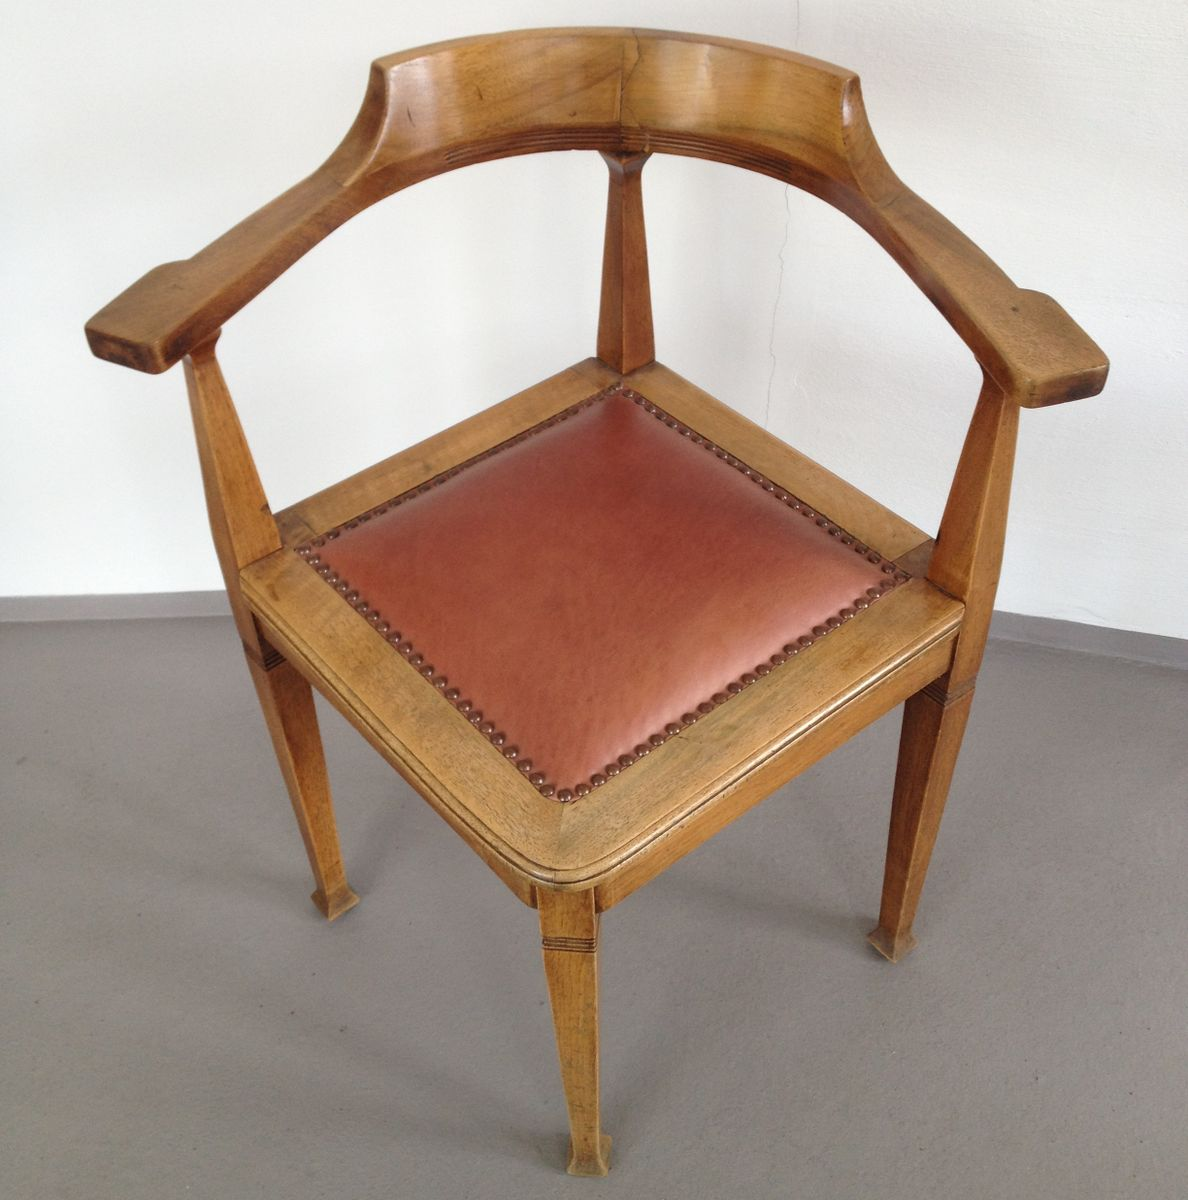 16 Wooden Captains Chairs Uk Childrens Table And 2